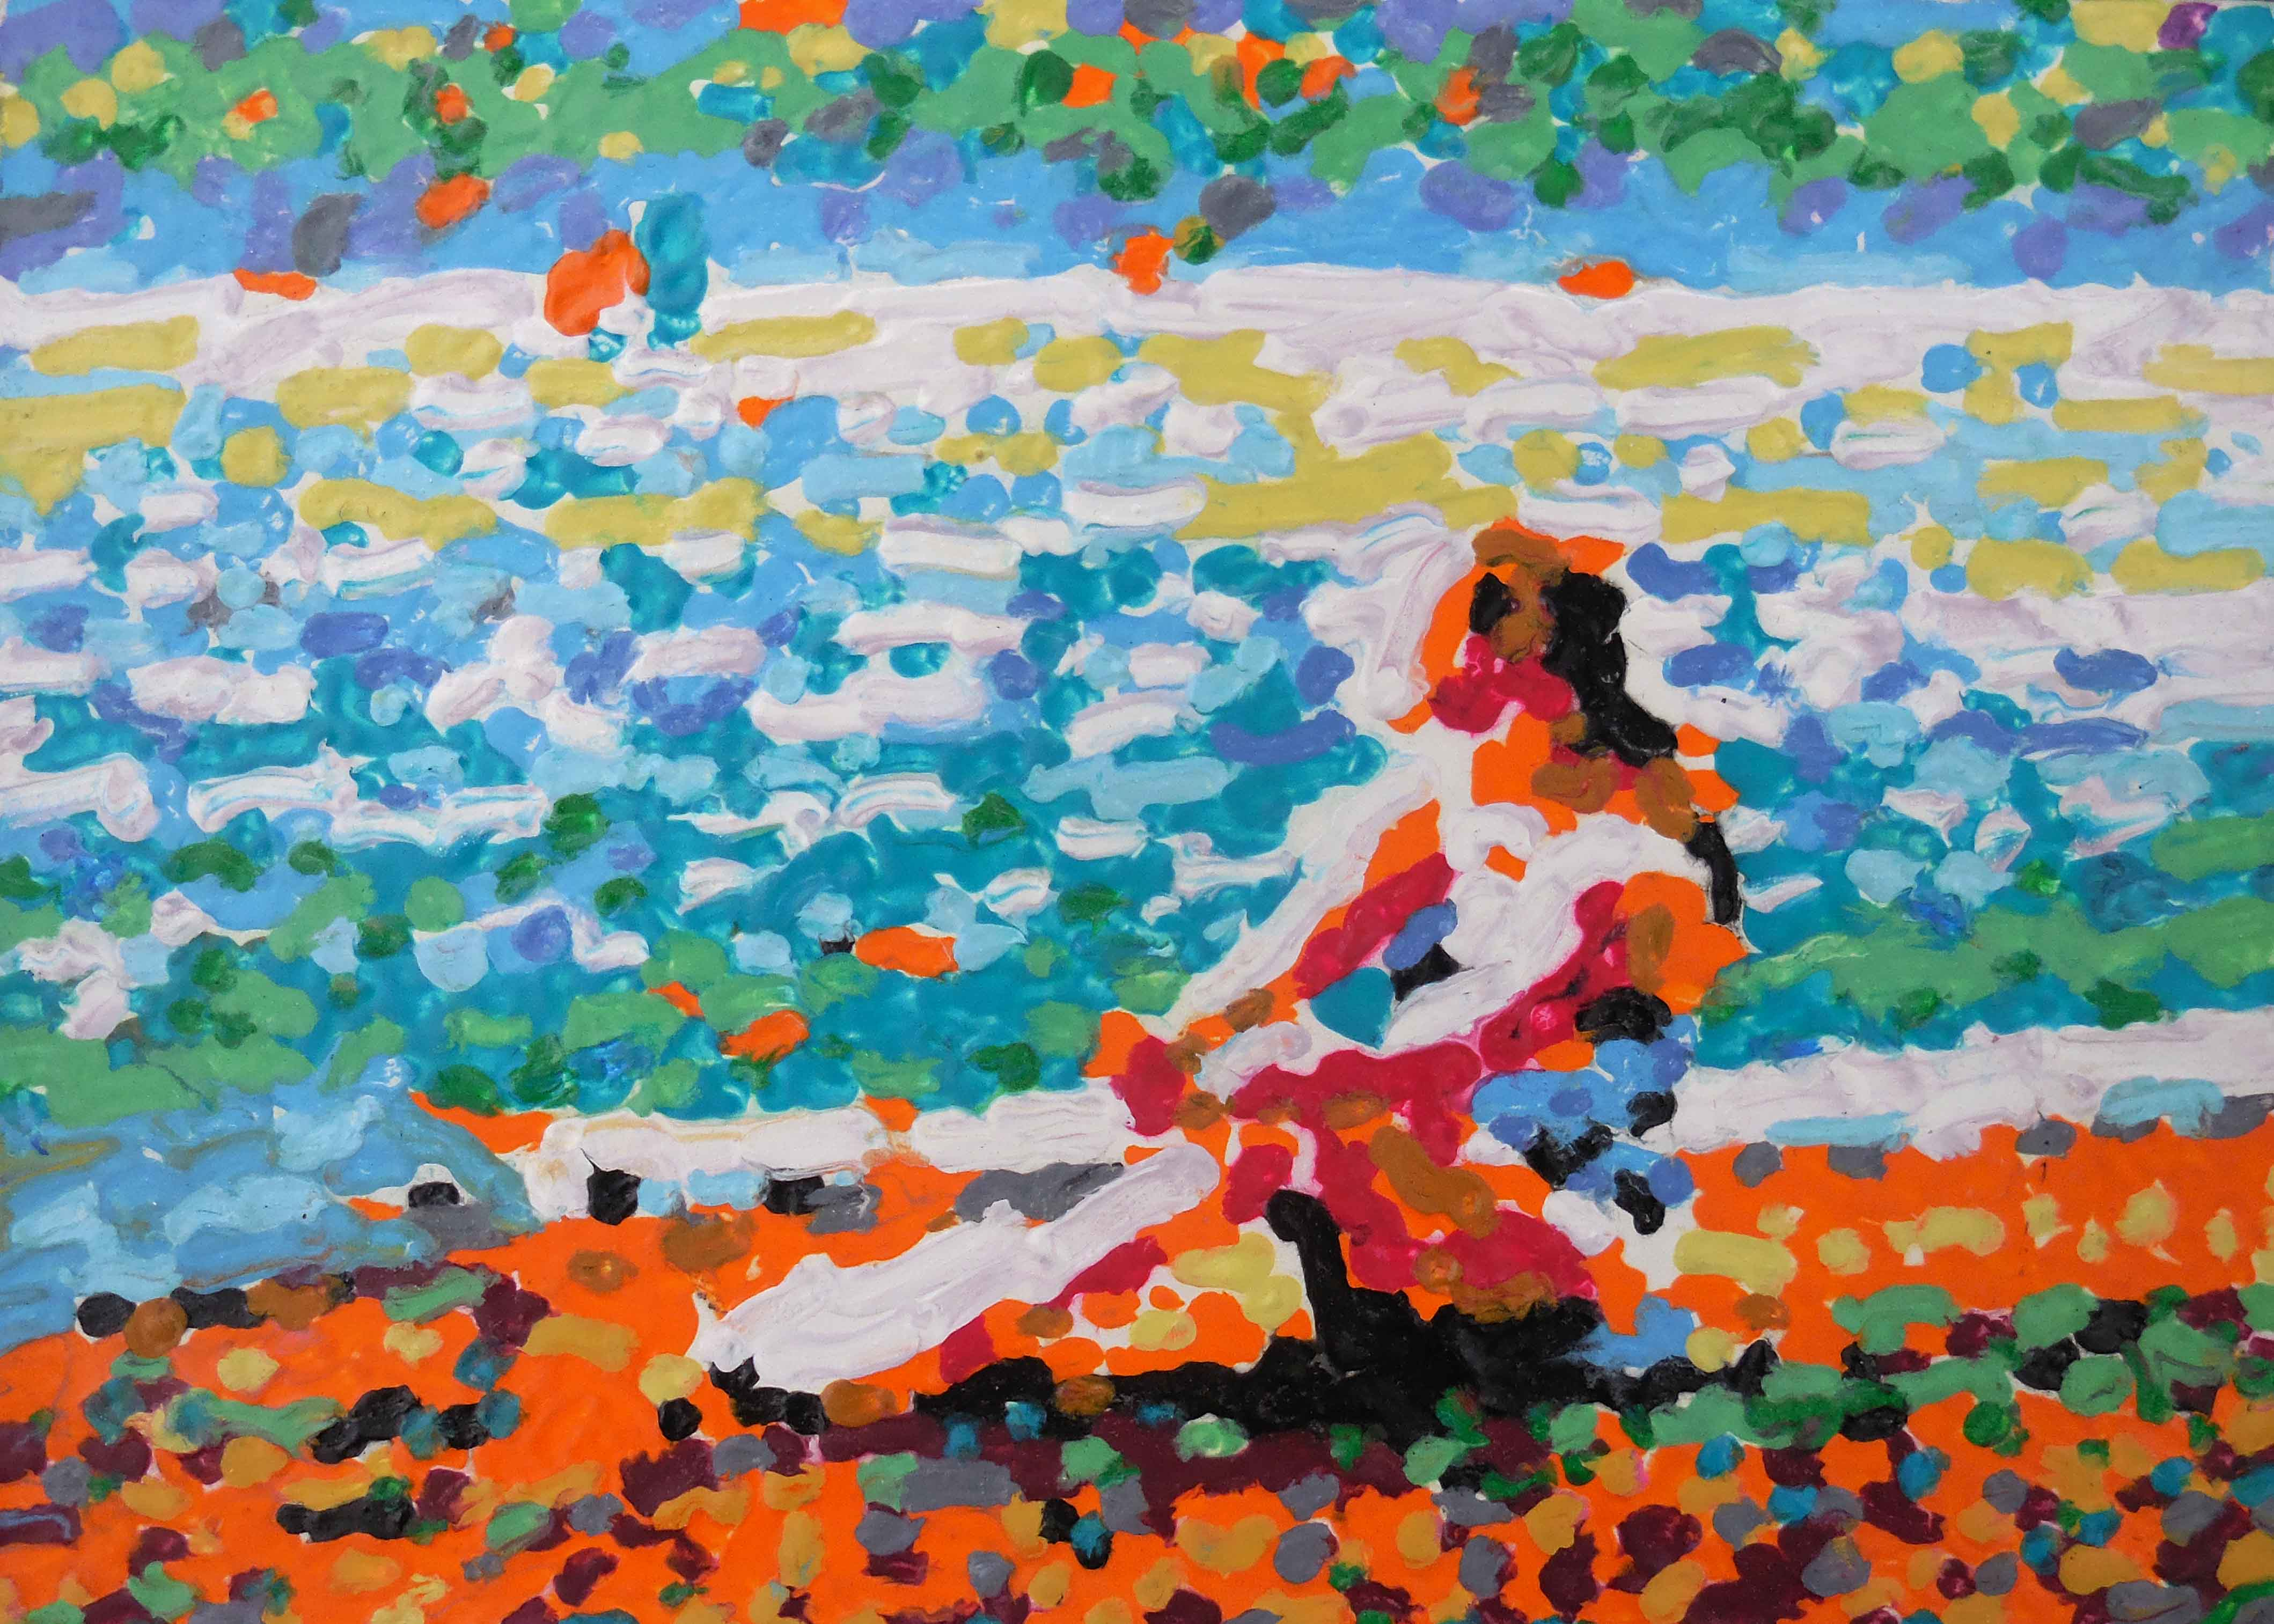 Helen gazing out on lake zurich impressionist oil painting by tom lohre